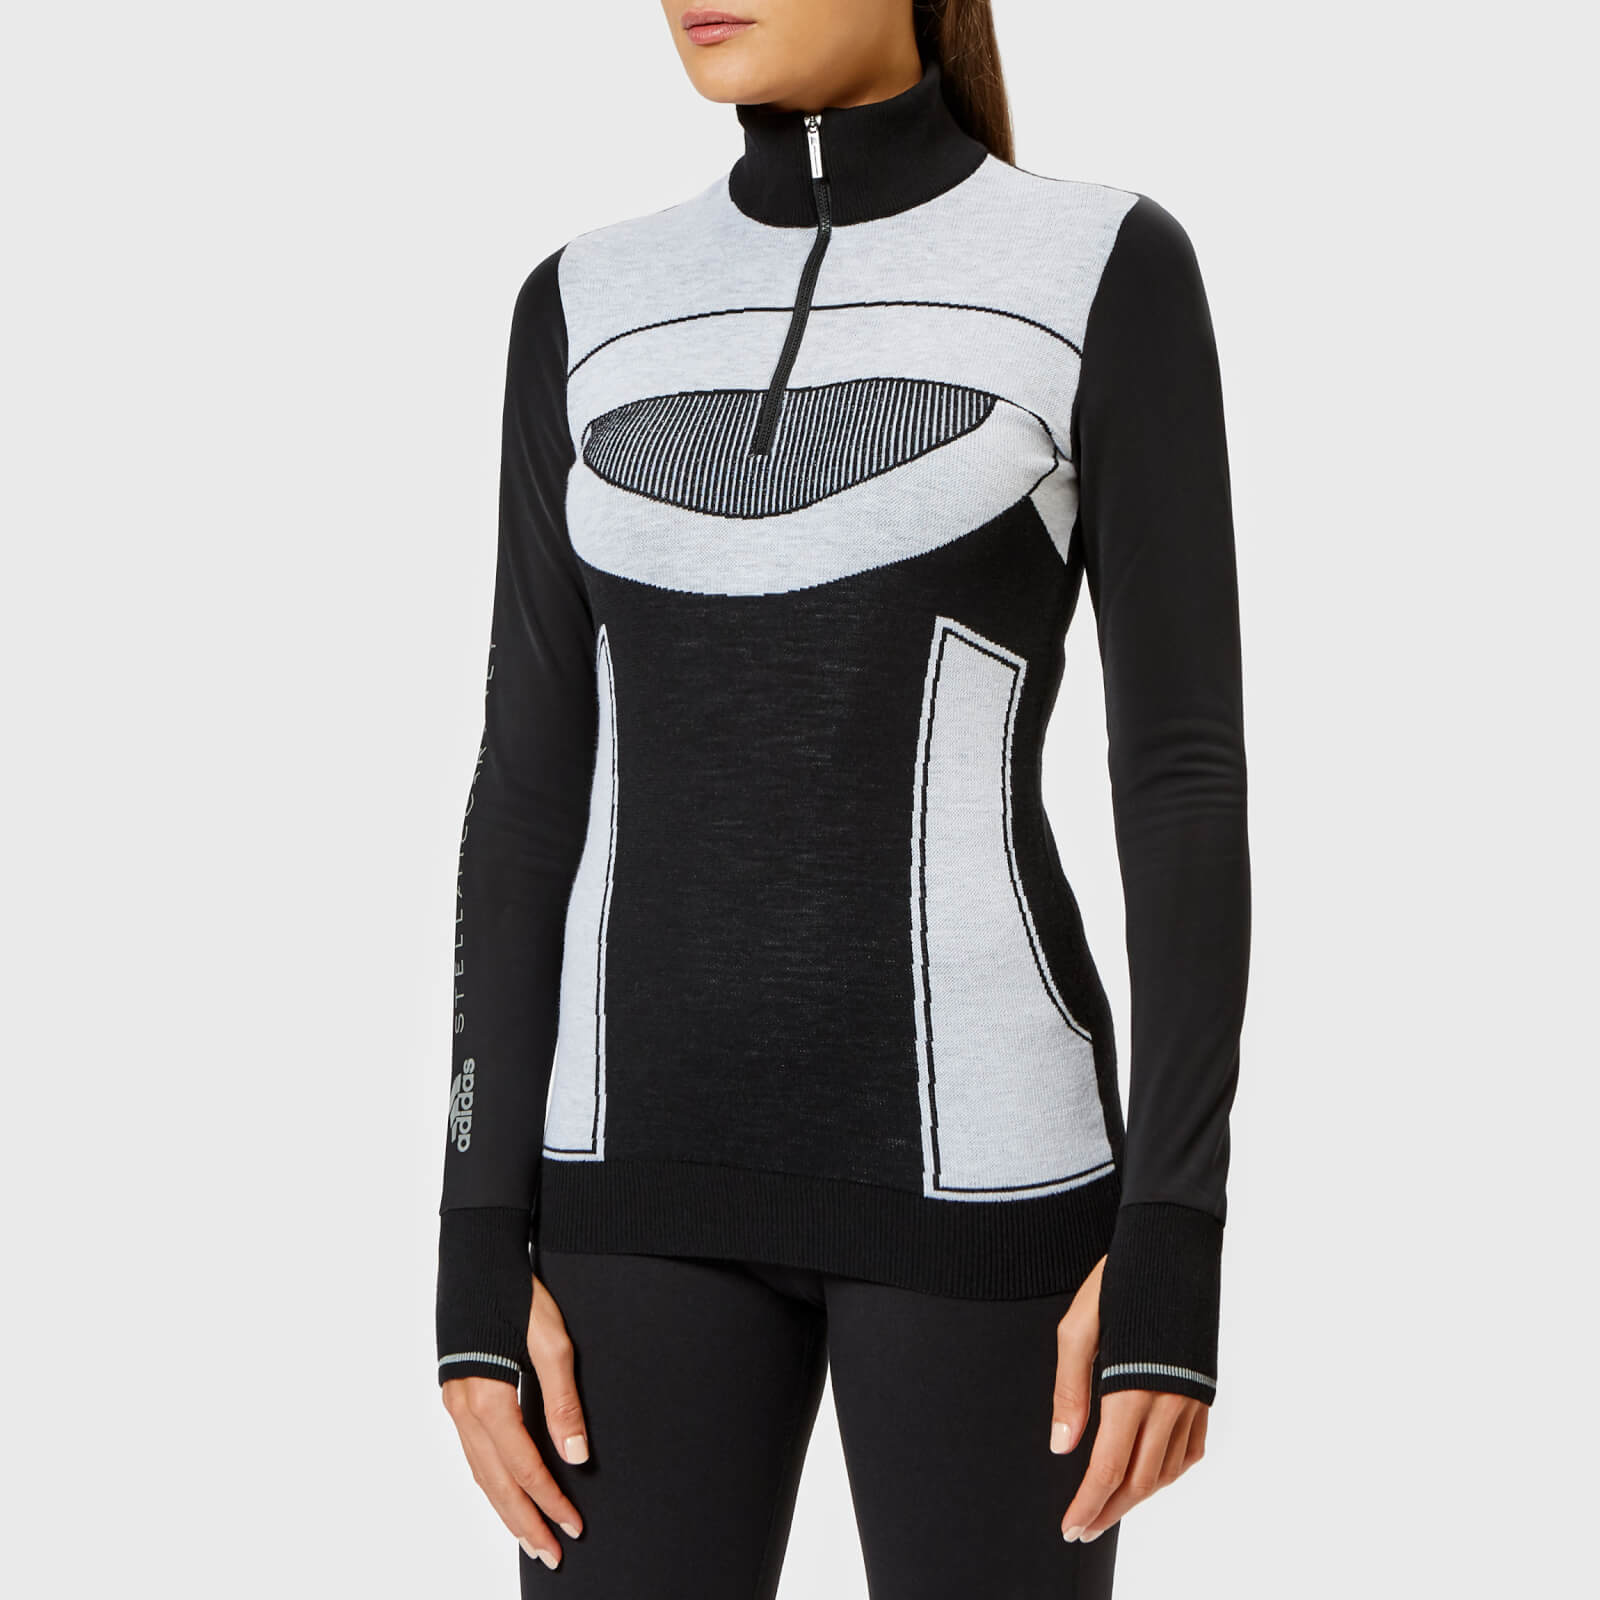 d4e42911bf6 adidas by Stella McCartney Women's Run Ultra Long Sleeve Top - Black/White  - Free UK Delivery over £50